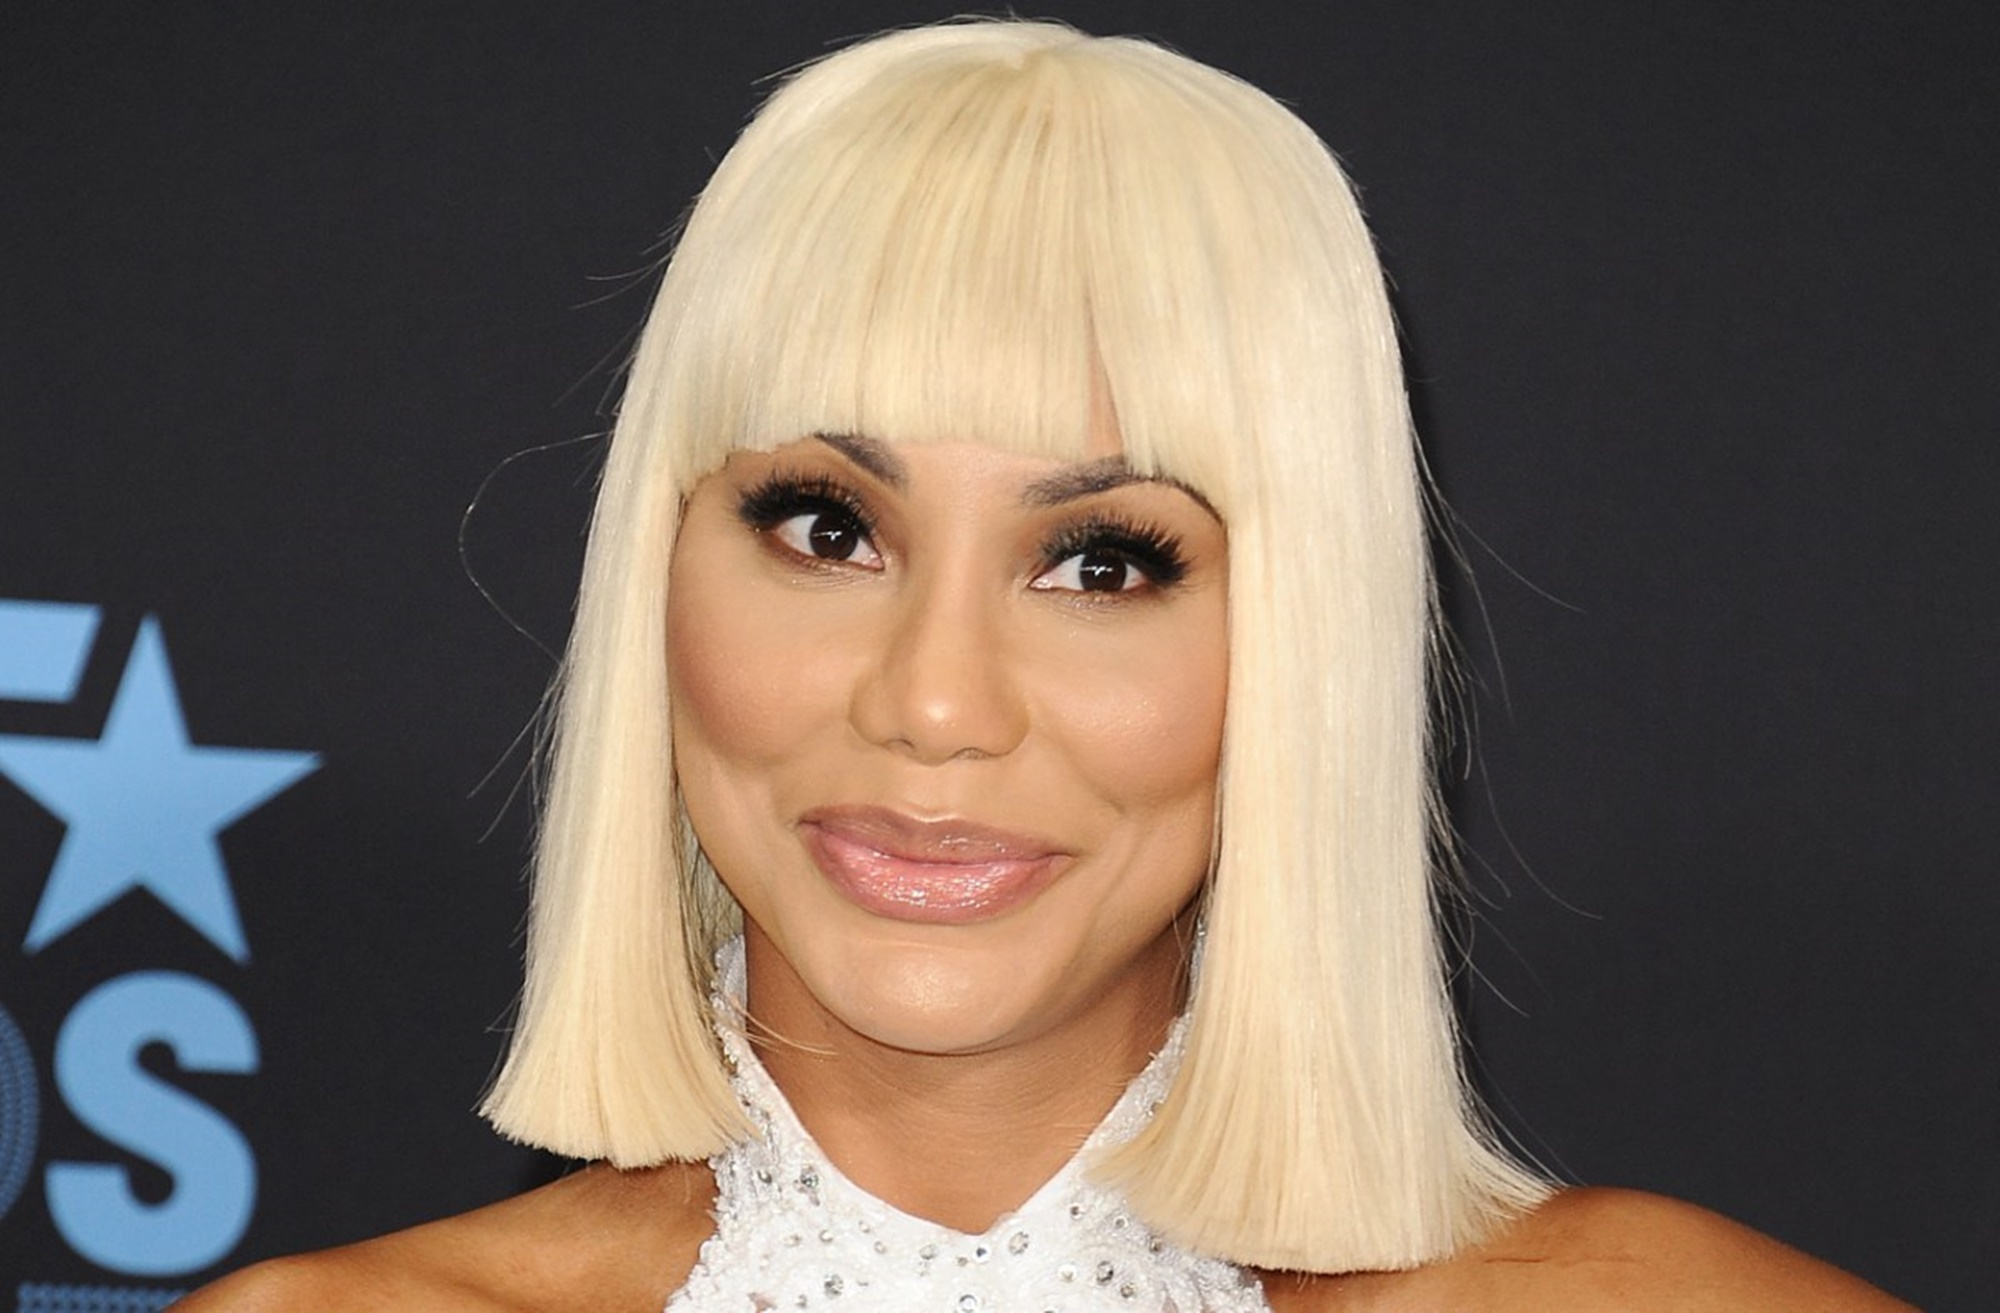 tamar-braxton-bares-lots-of-skin-in-kandi-burruss-dungeon-show-picture-she-is-flaunting-the-body-underneath-those-church-clothes-as-some-compare-her-to-christina-aguilera